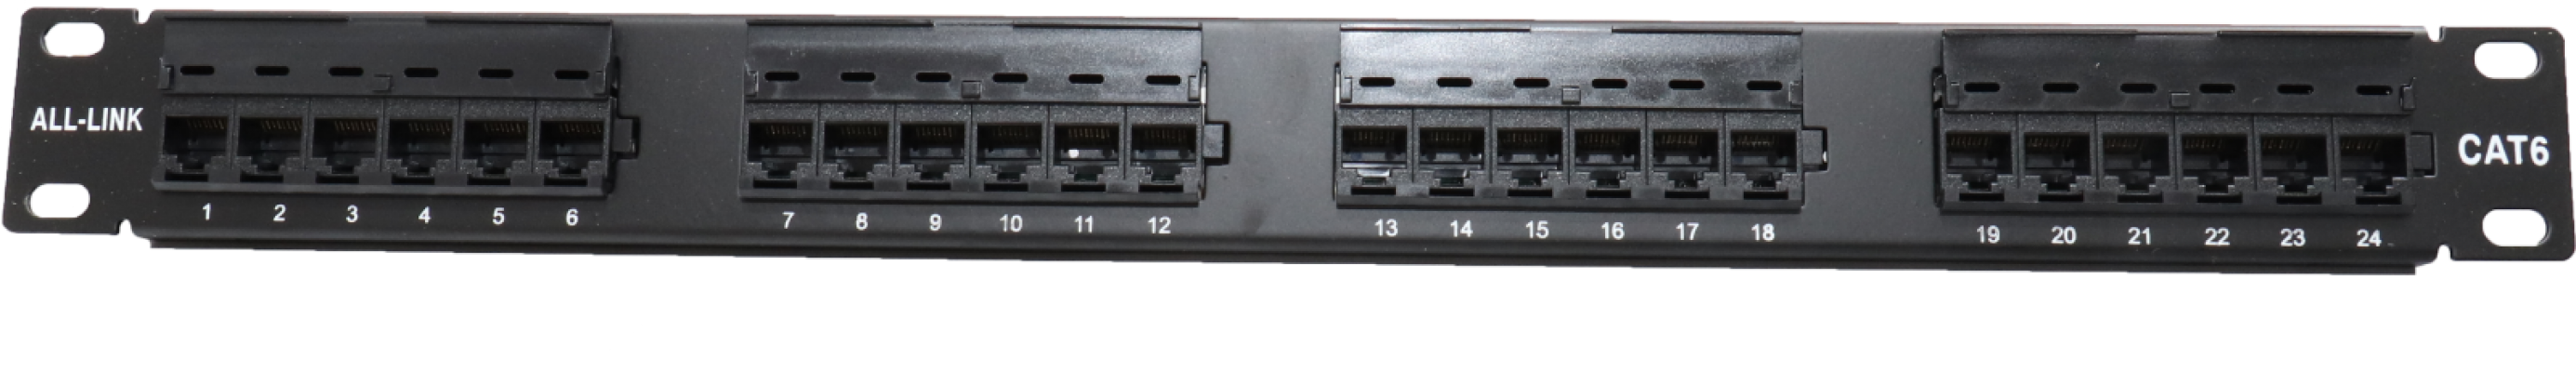 ALL-LINK CAT6 UTP 24PORT